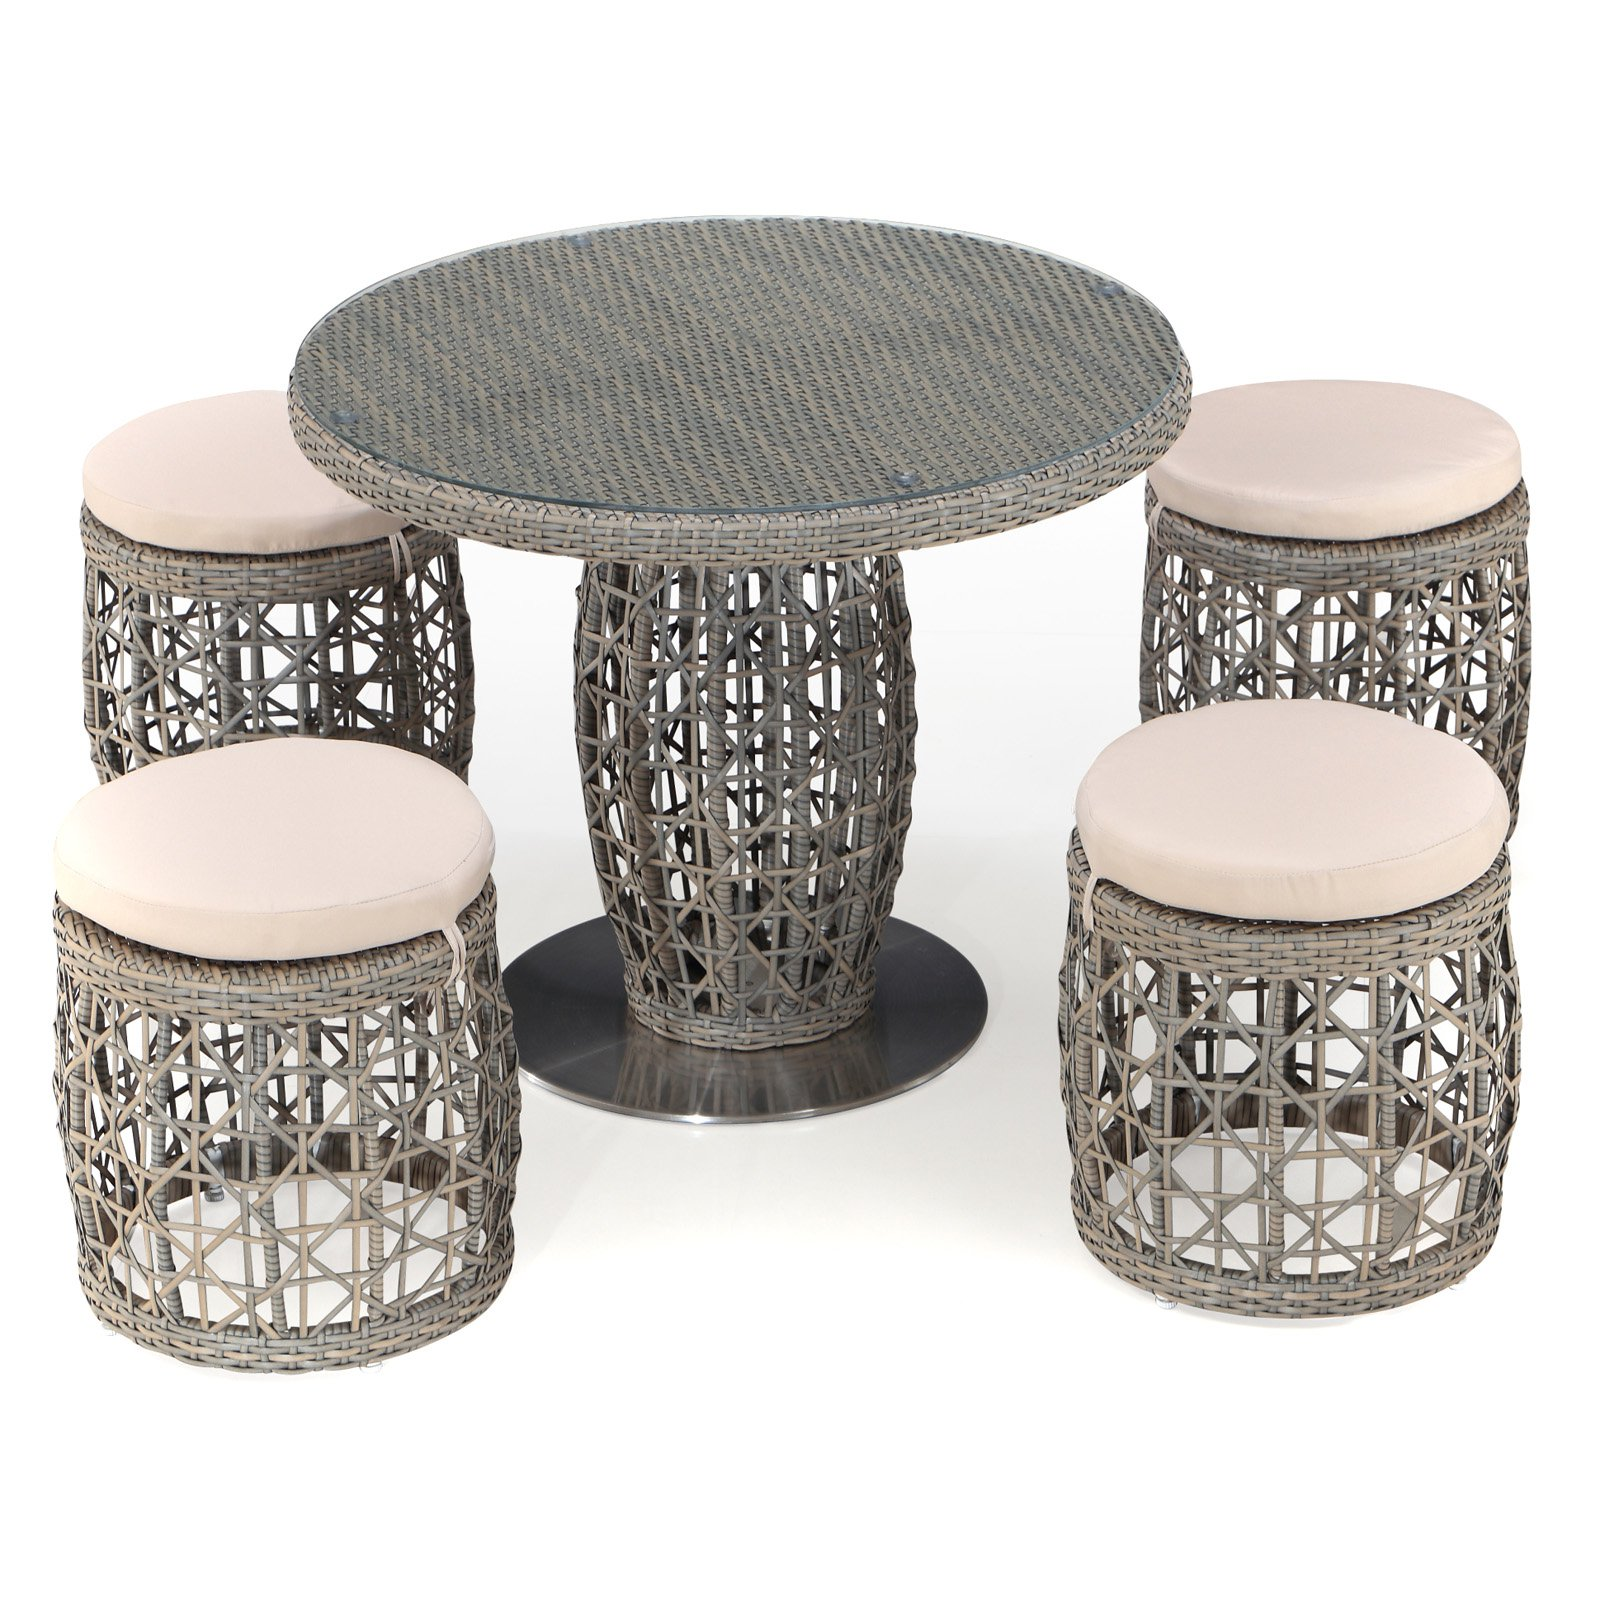 Ceets Basson 5 Piece Wicker Patio Dining Room Set by Ceets